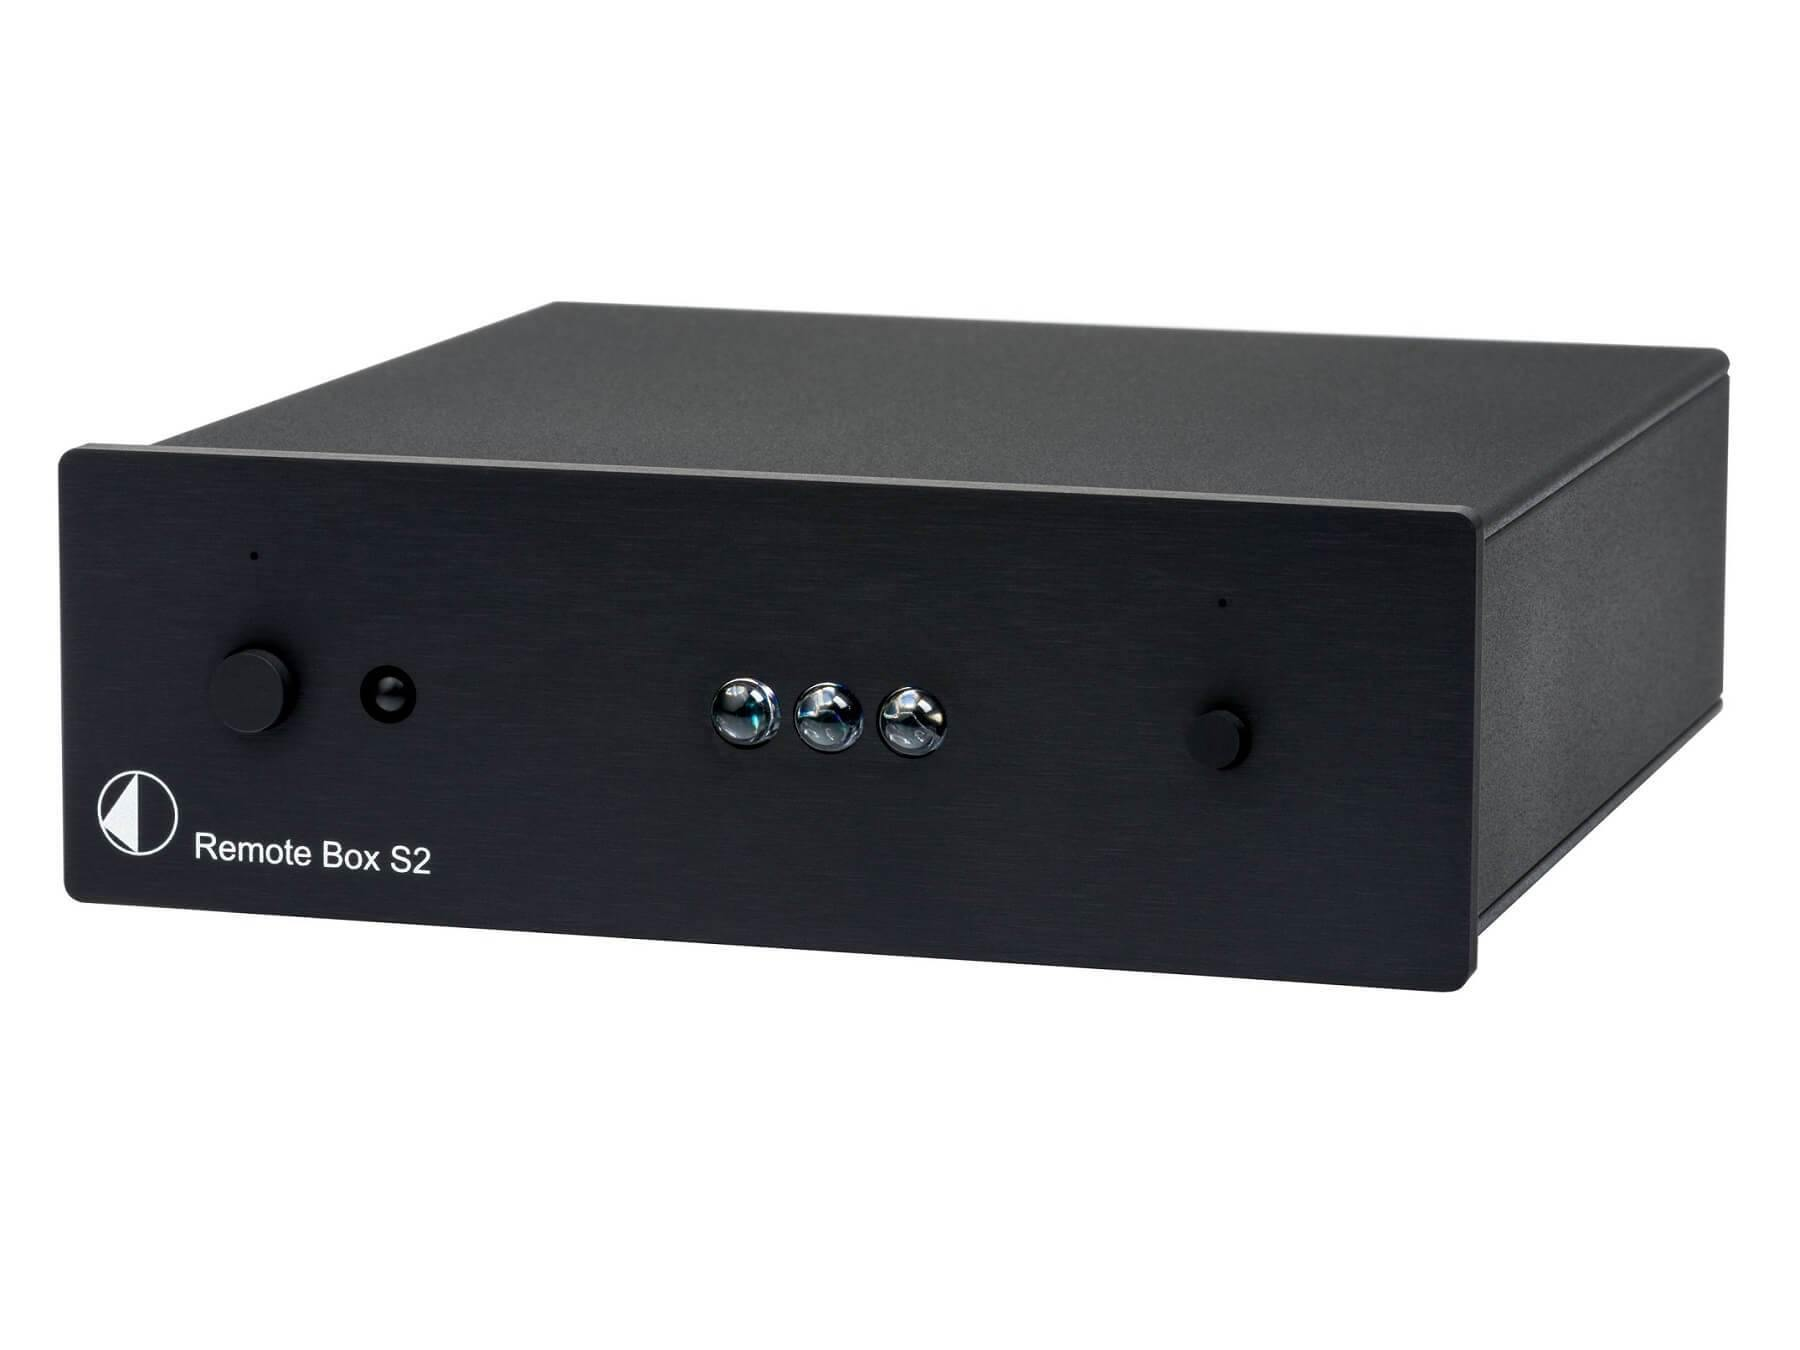 Pro-Ject Remote Box S2 - IR Remote Control - Black